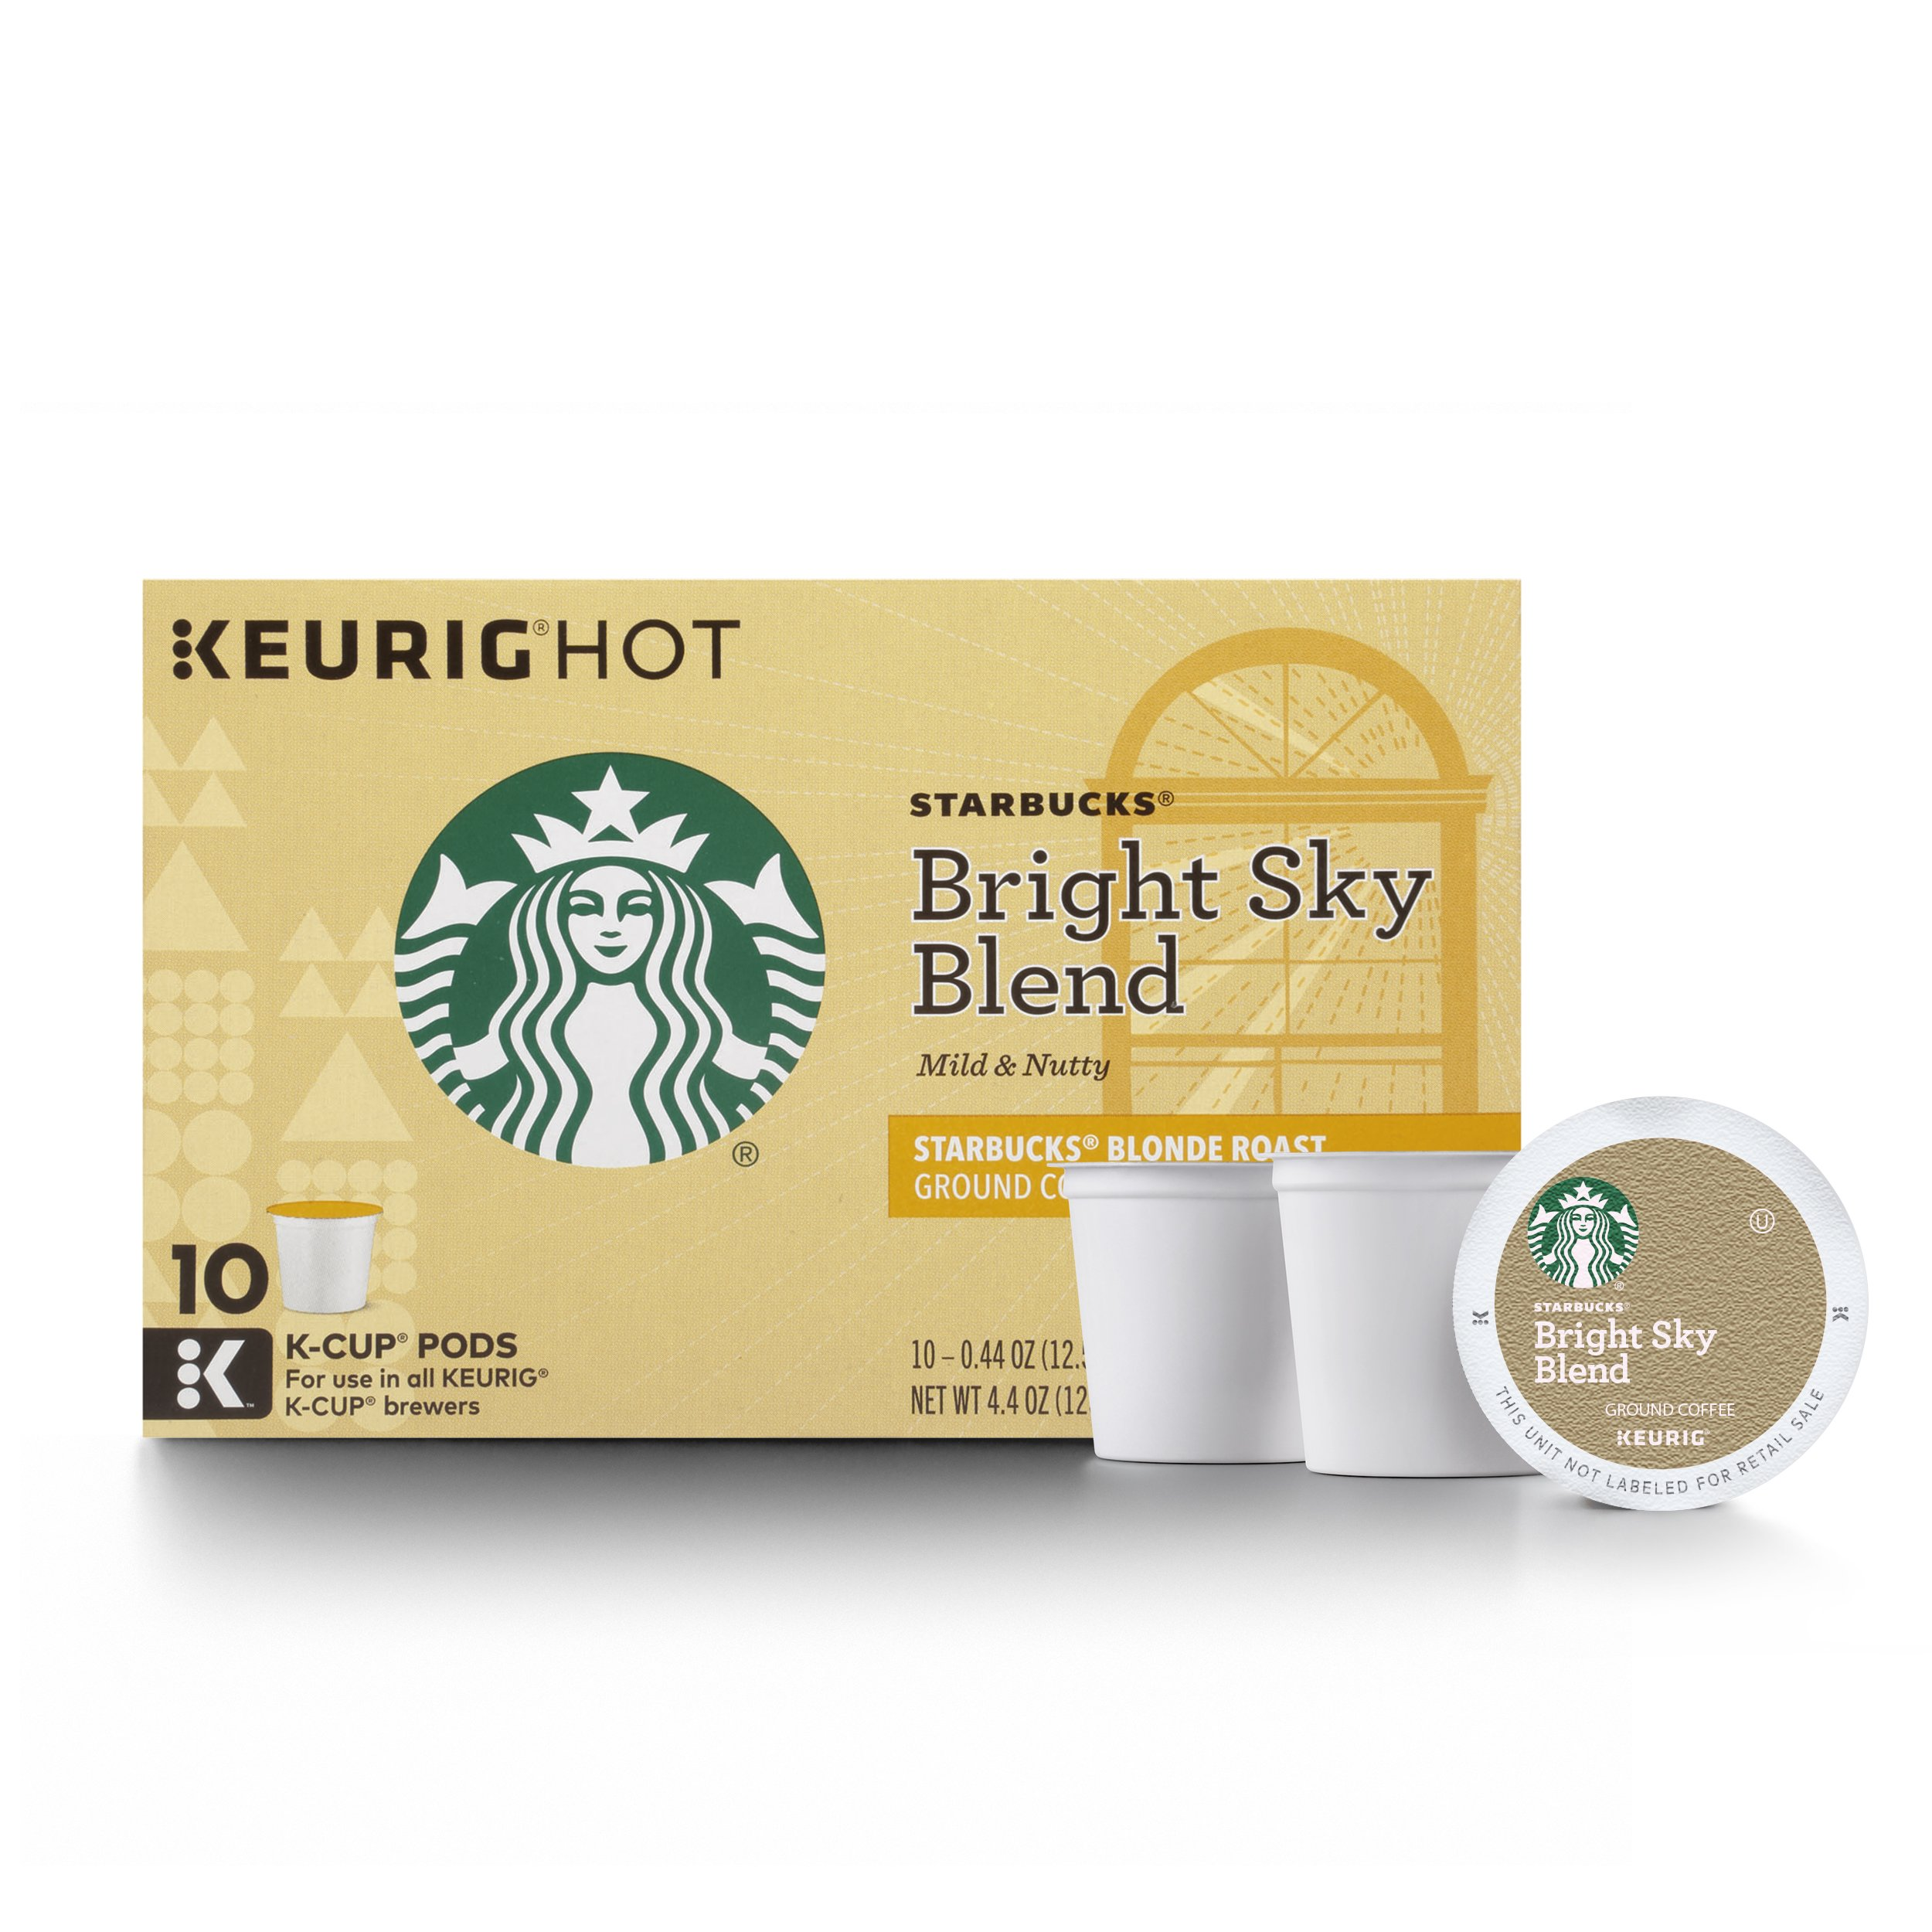 Starbucks Bright Sky Blend Blonde Light Roast Single Cup Coffee for Keurig Brewers, 6 Boxes of 10 (60 Total K-Cup pods)